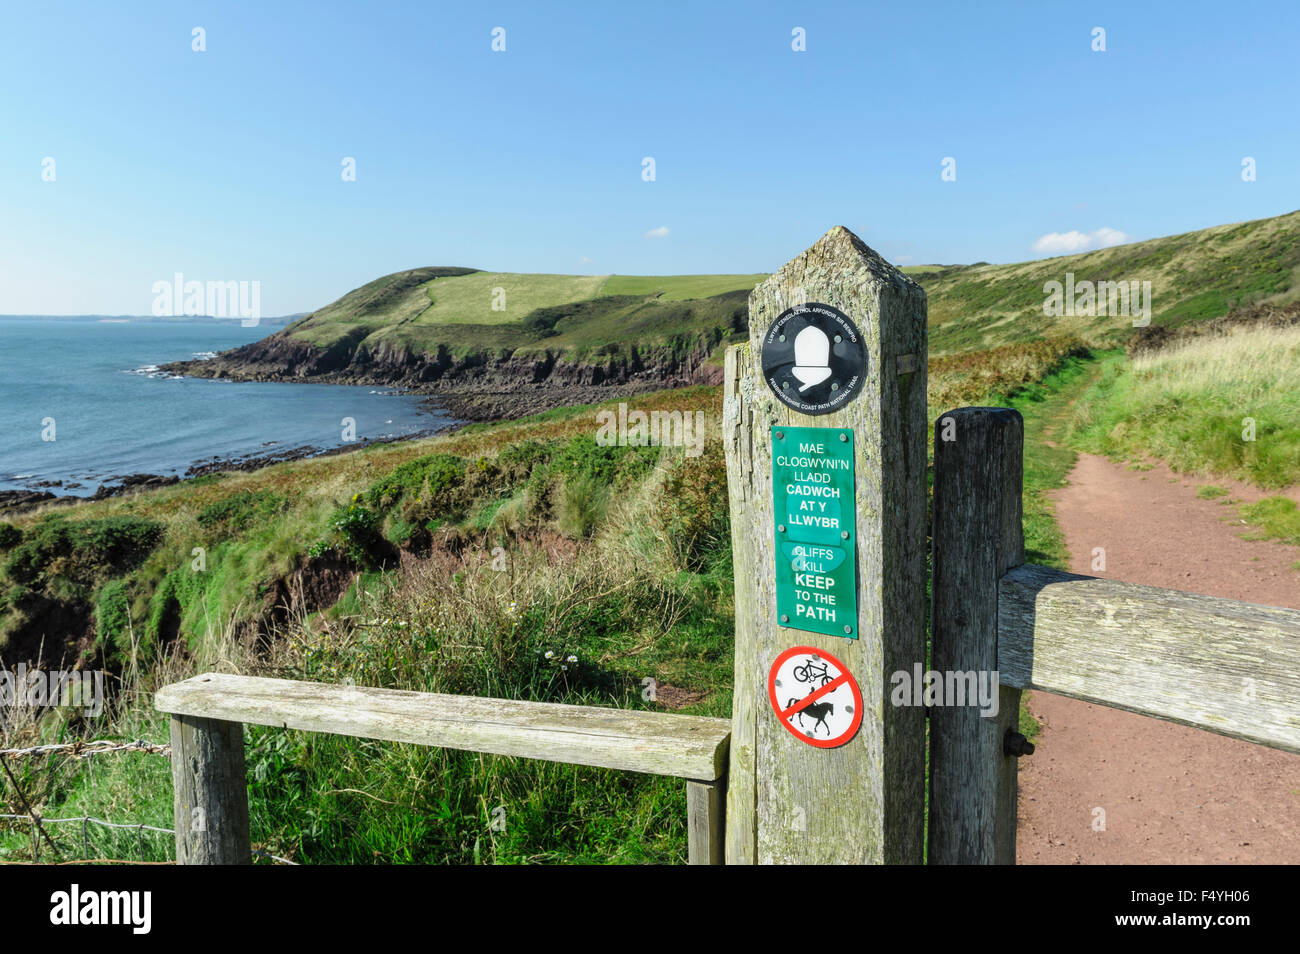 Signpost for the Pembrokeshire coast path. National park footpath sign.Trail. - Stock Image